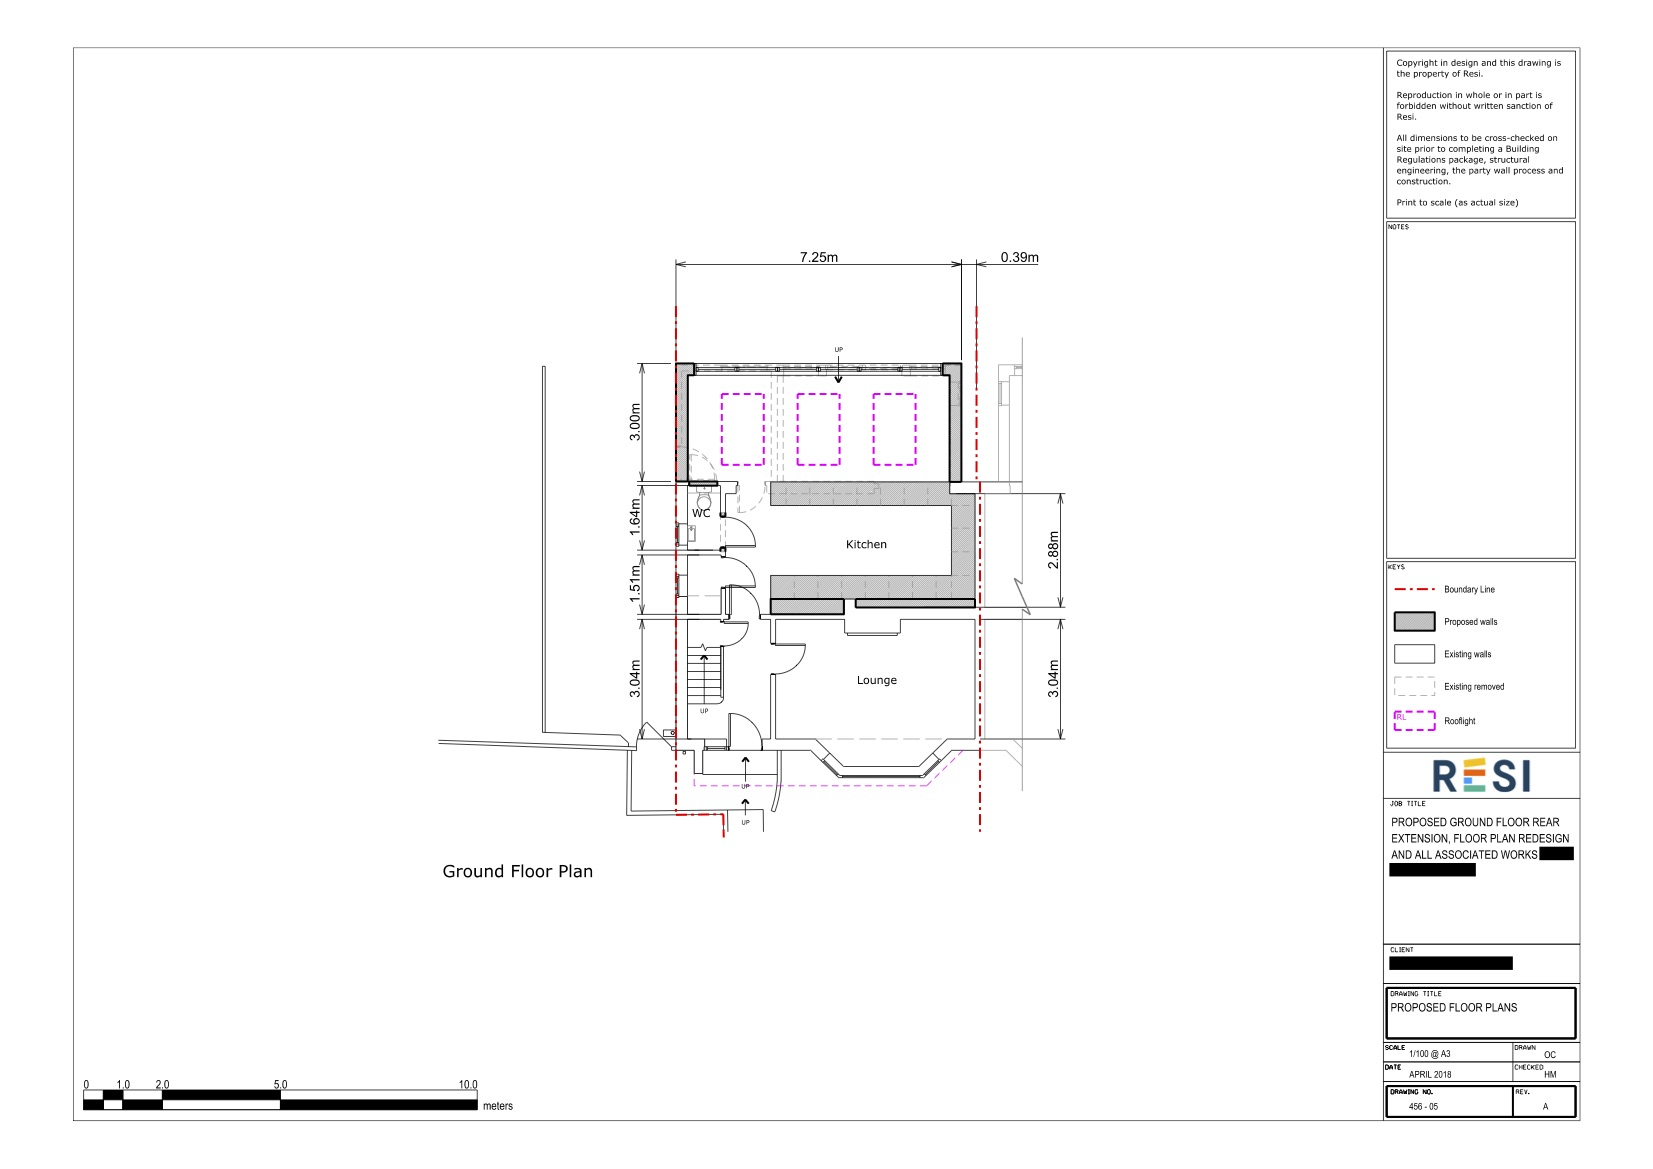 Architectural drawings rev a 10   ground floor plans